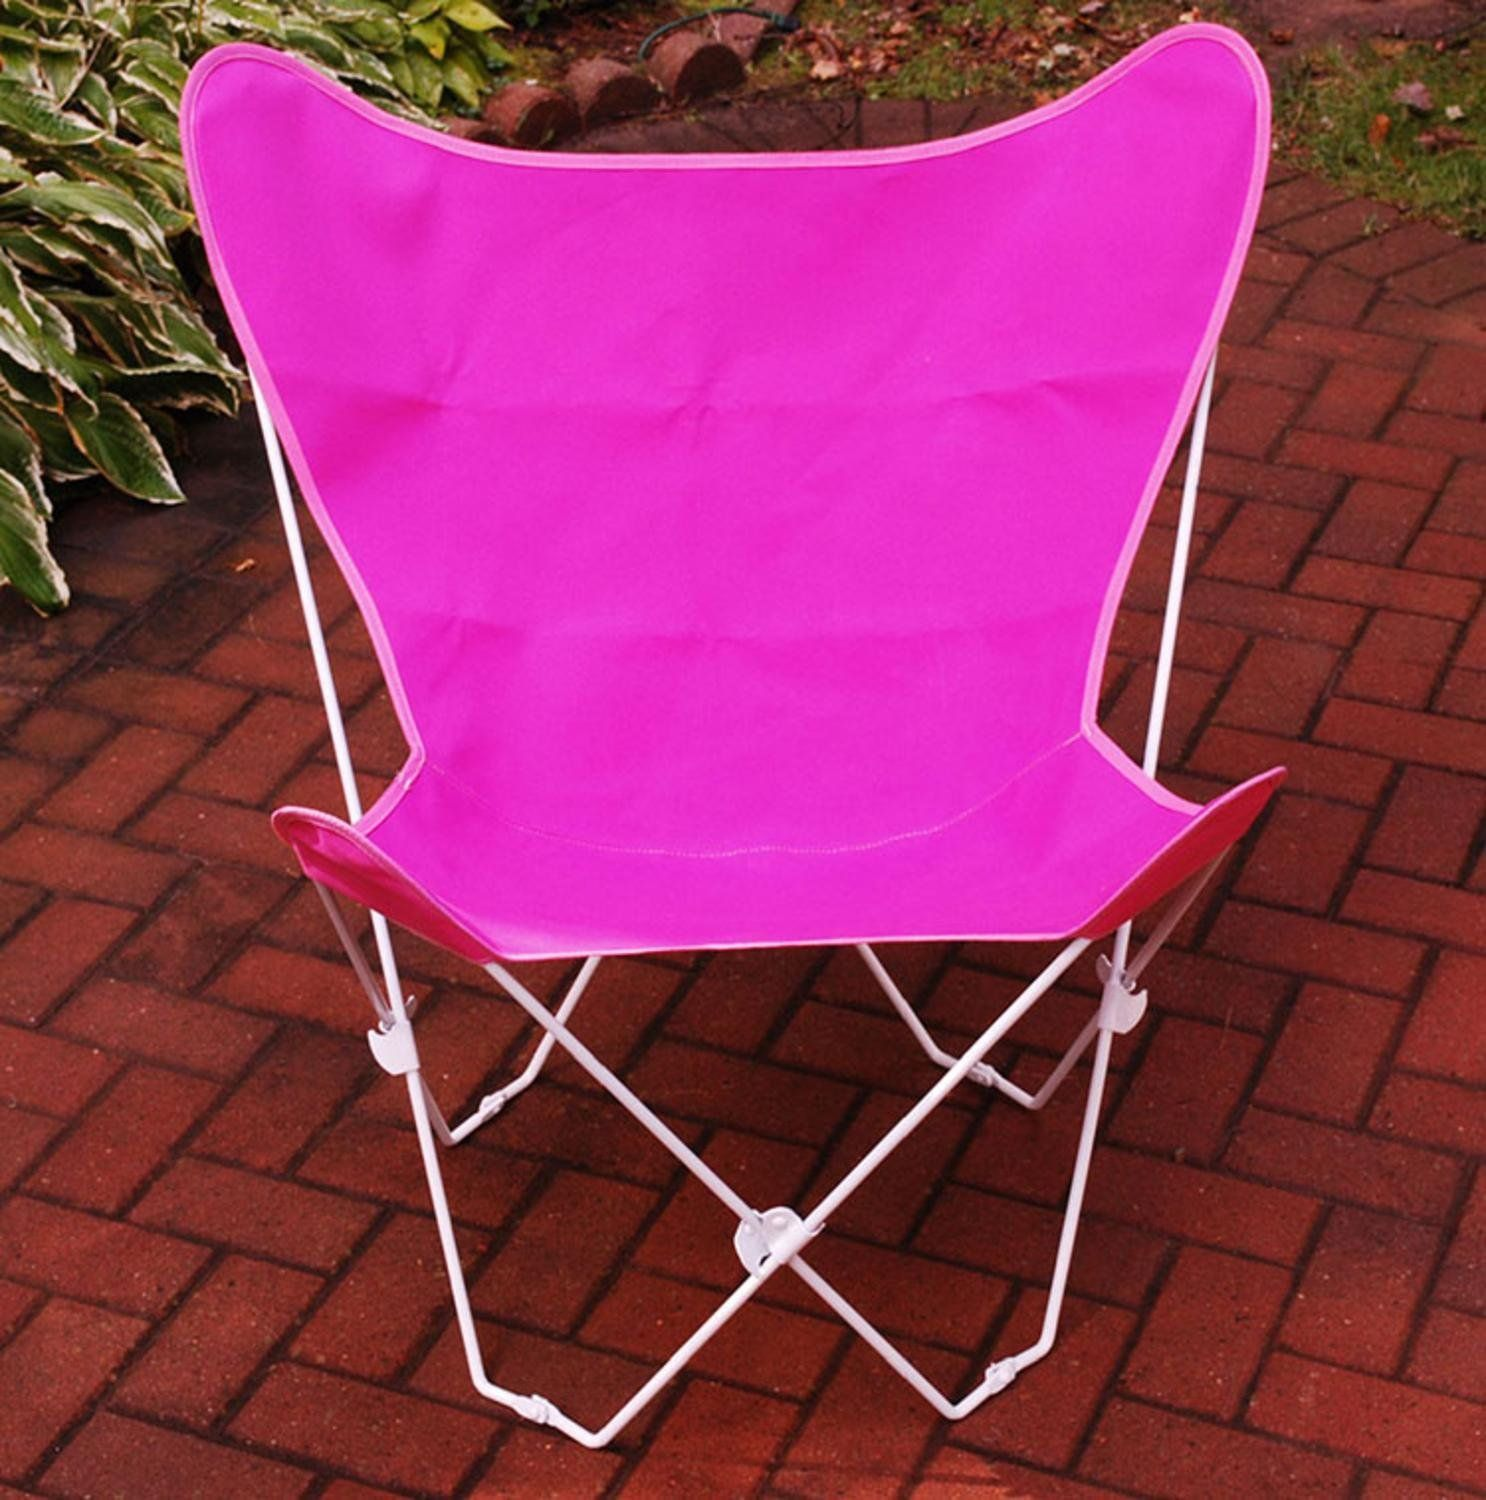 Retro Folding Butterfly Chair and Hot Pink Cover with White Frame